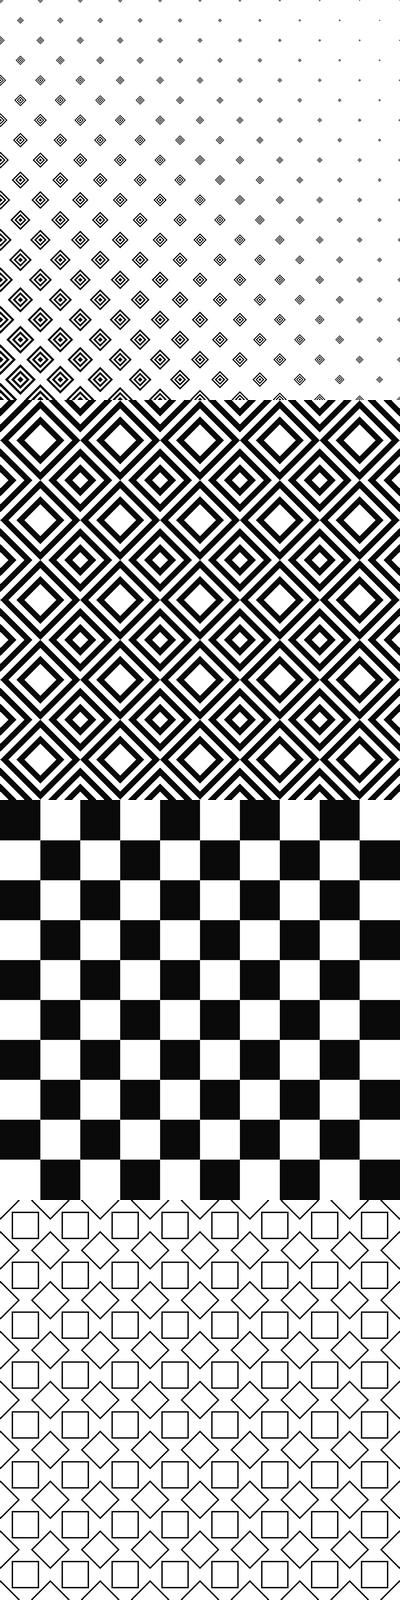 Black and white square pattern background collection - 99 vector patterns (EPS + JPG)